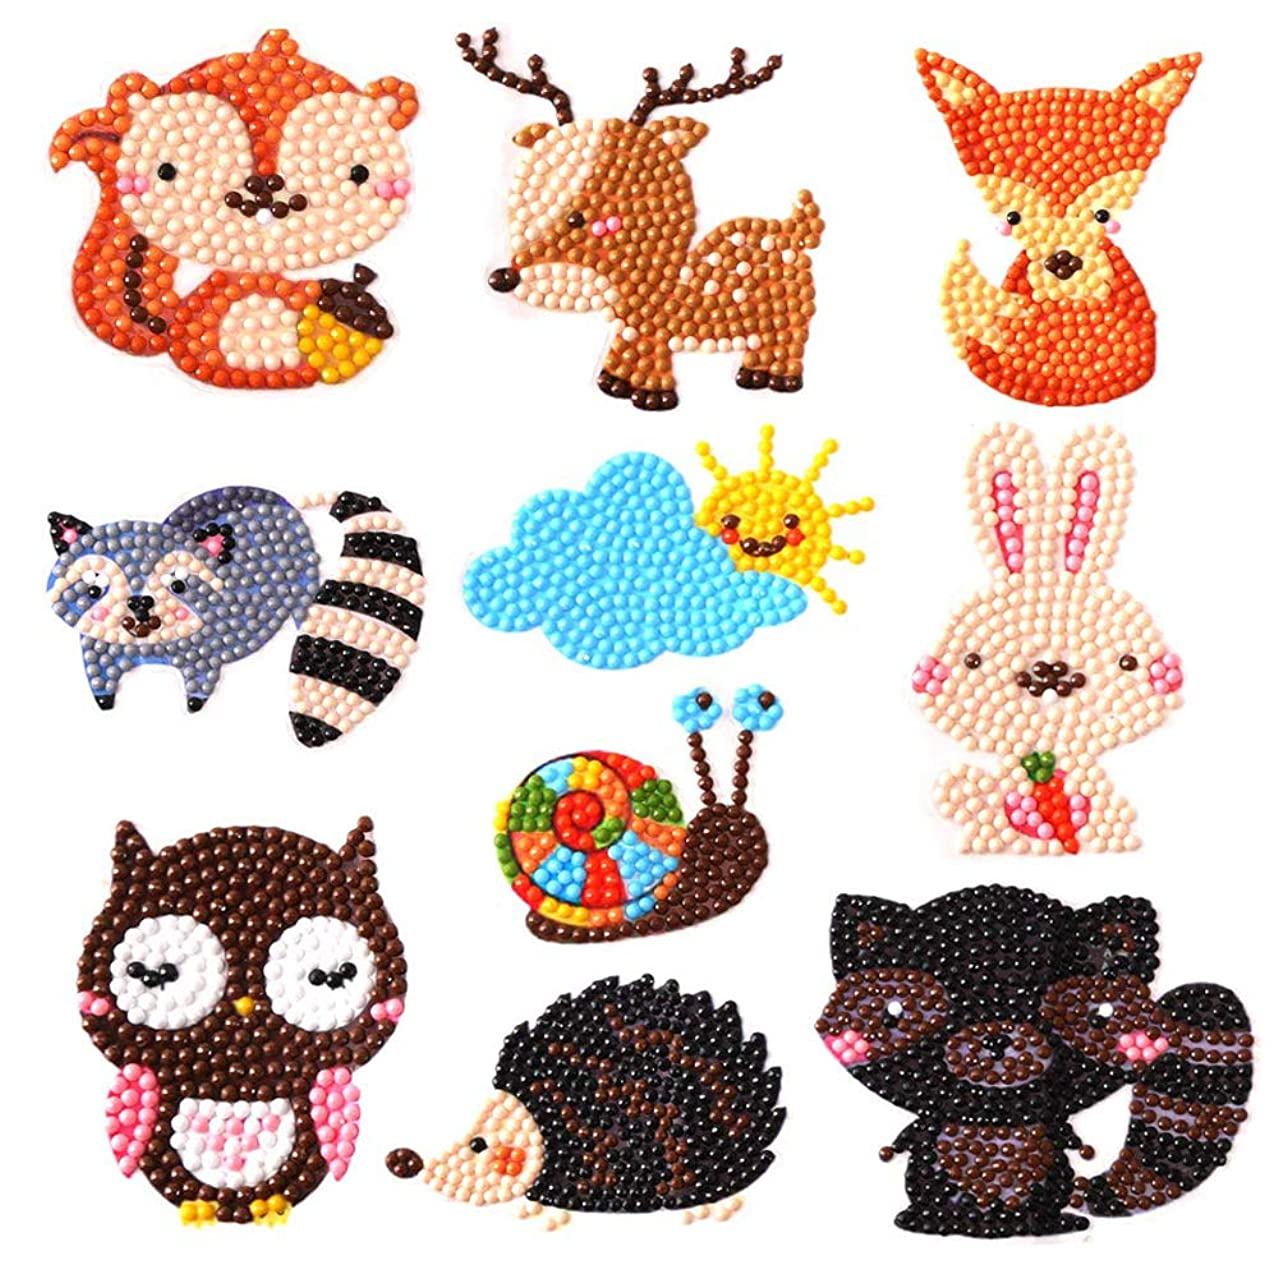 MYSNKU DIY Diamond Painting Kits for Kids DIY Paint by Numbers Handmade Sticker Arts and Crafts for Children (Animal Series)